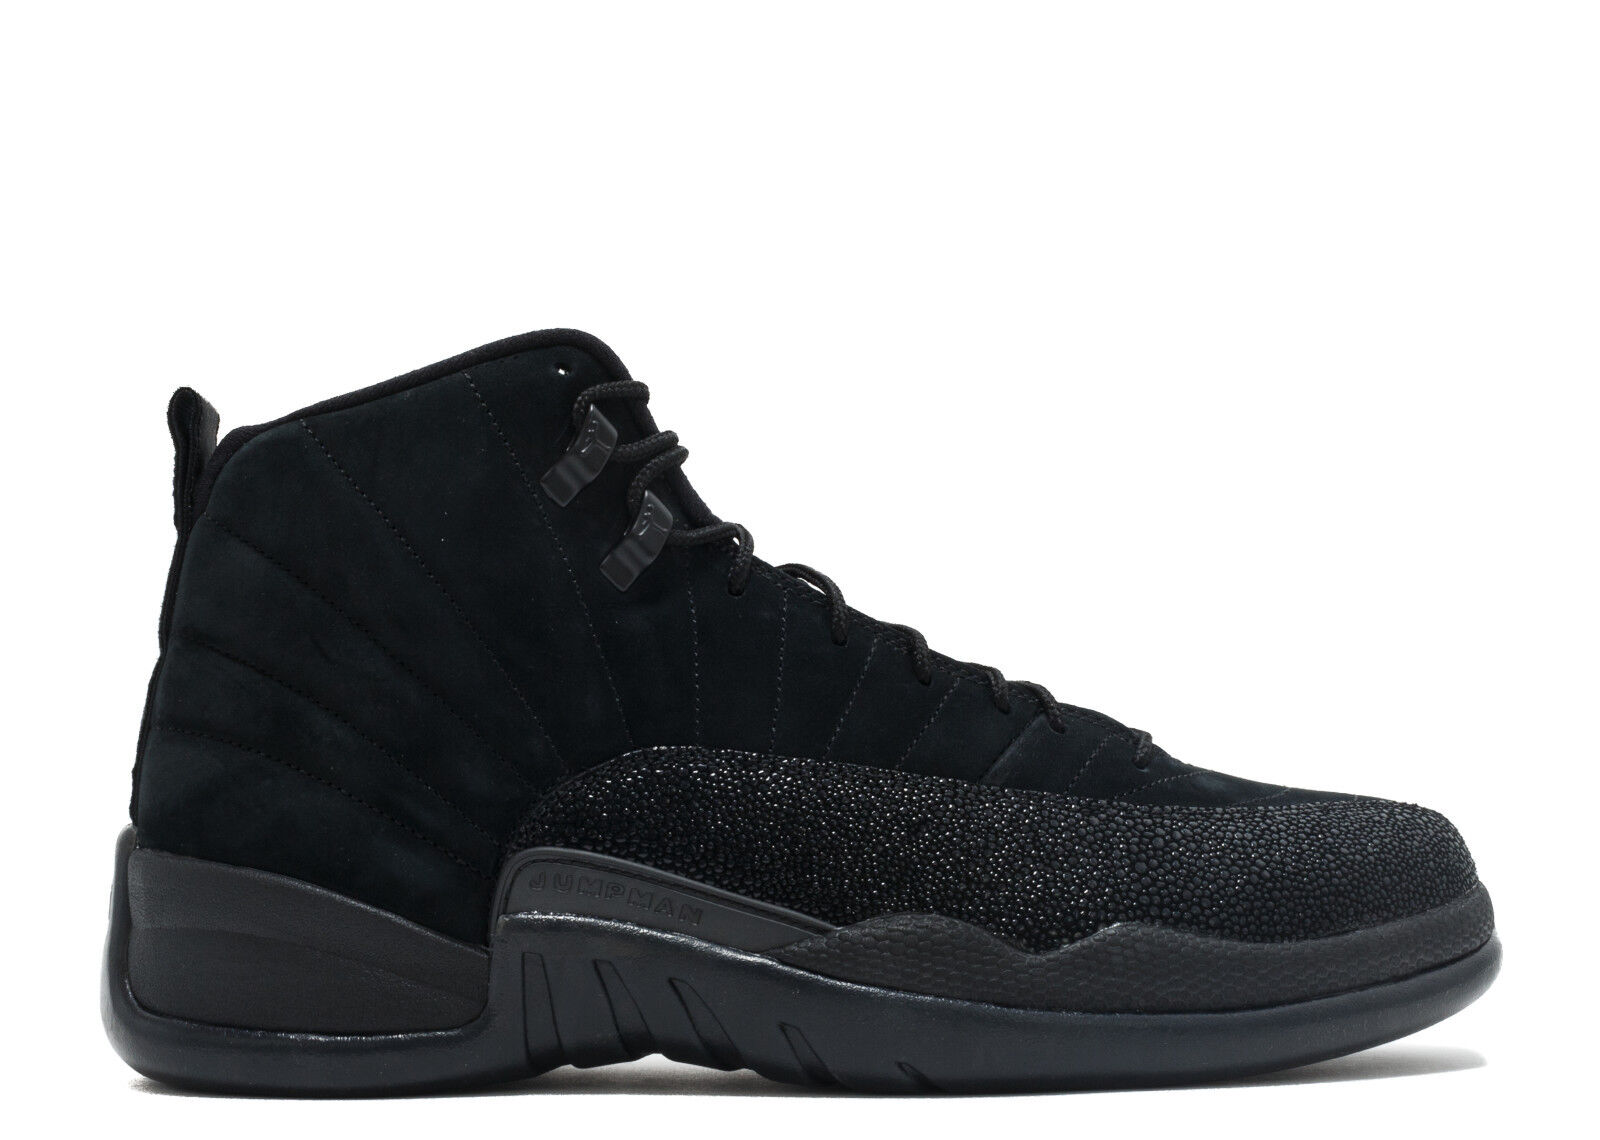 Nike Air Jordan 12 XII Retro OVO Black Size 10. 873864-032